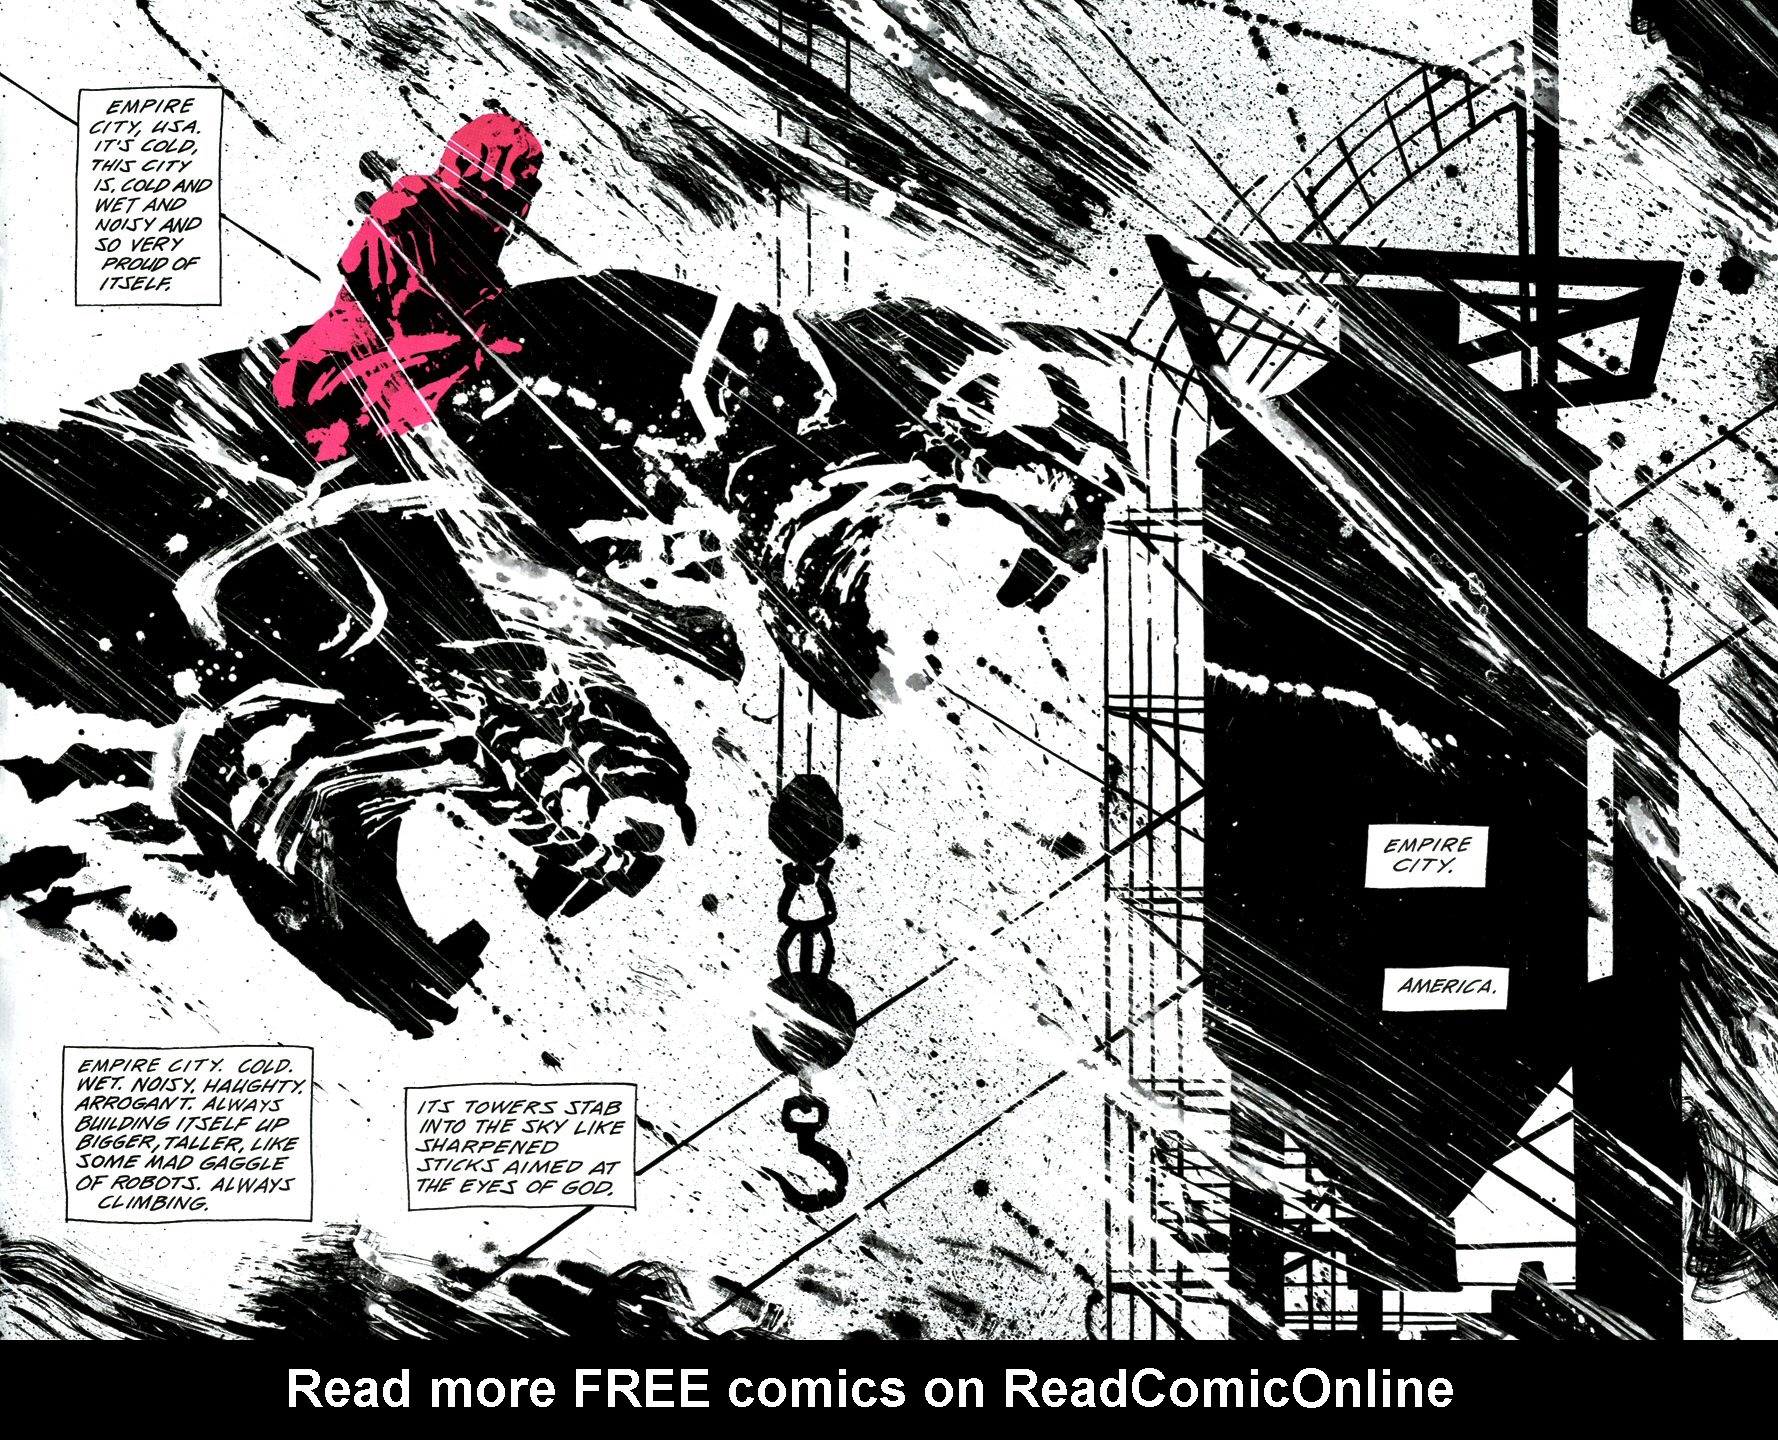 Read online Frank Miller's Holy Terror comic -  Issue # TPB - 40